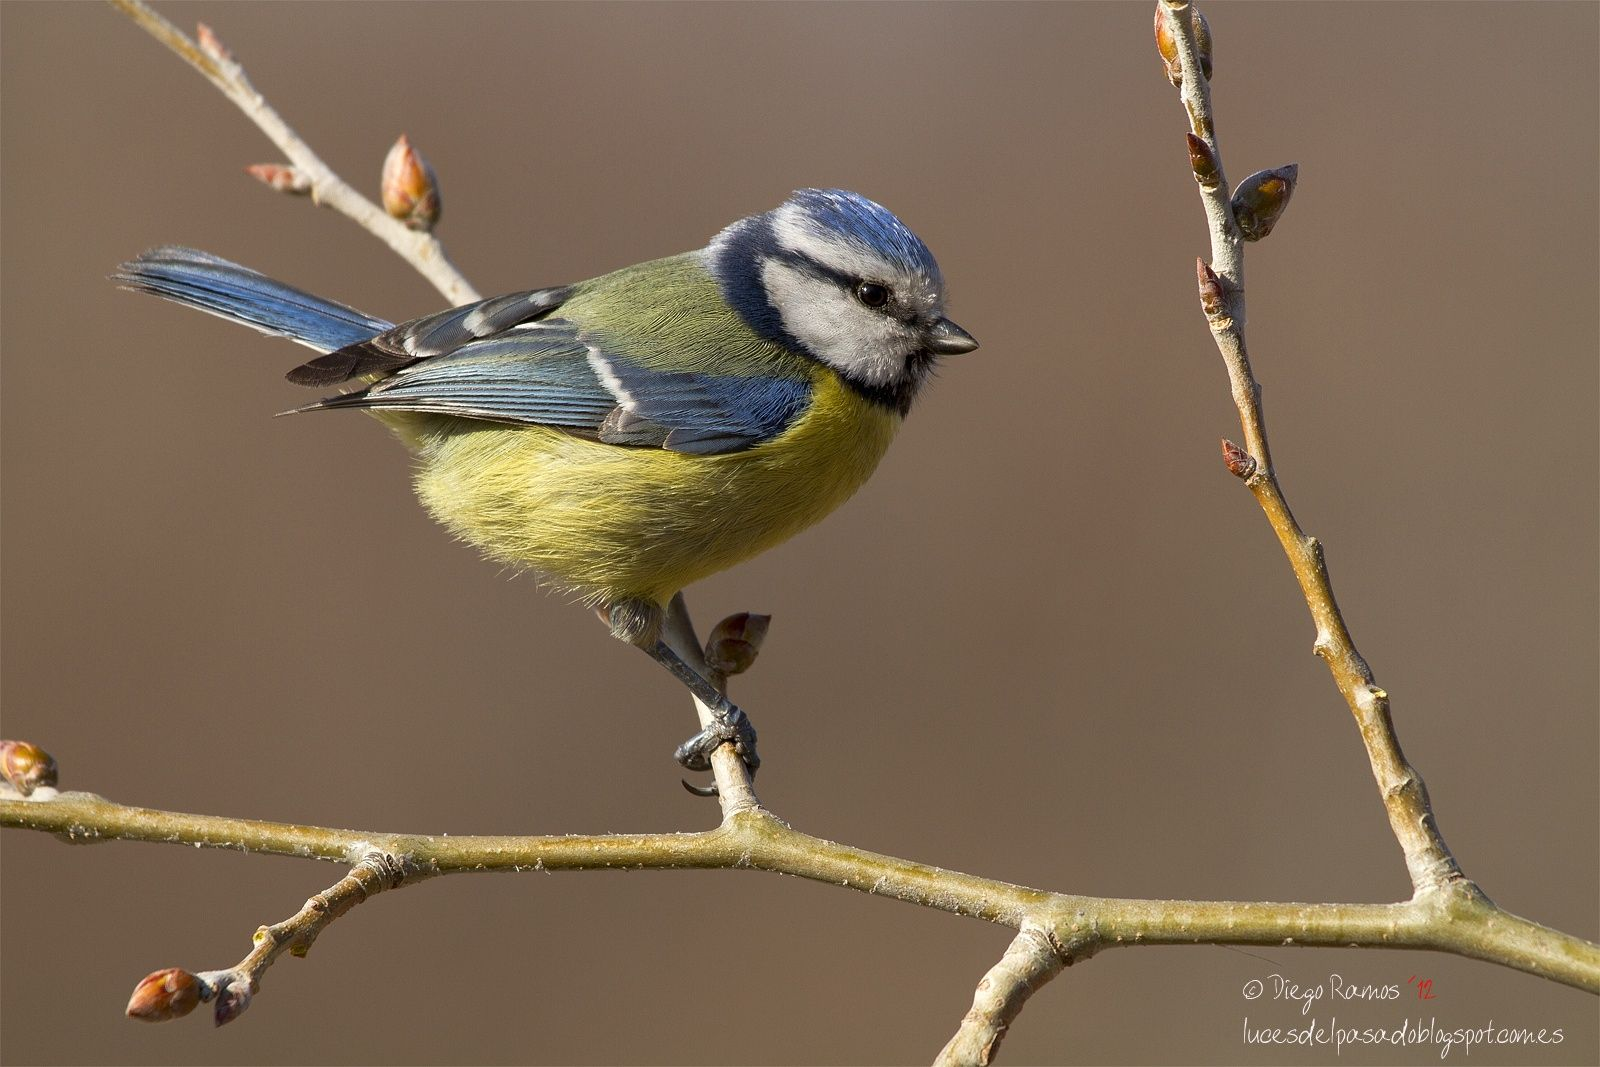 Blue and yellow - Blue and yellow in a little bird... Taken two years ago. I had…